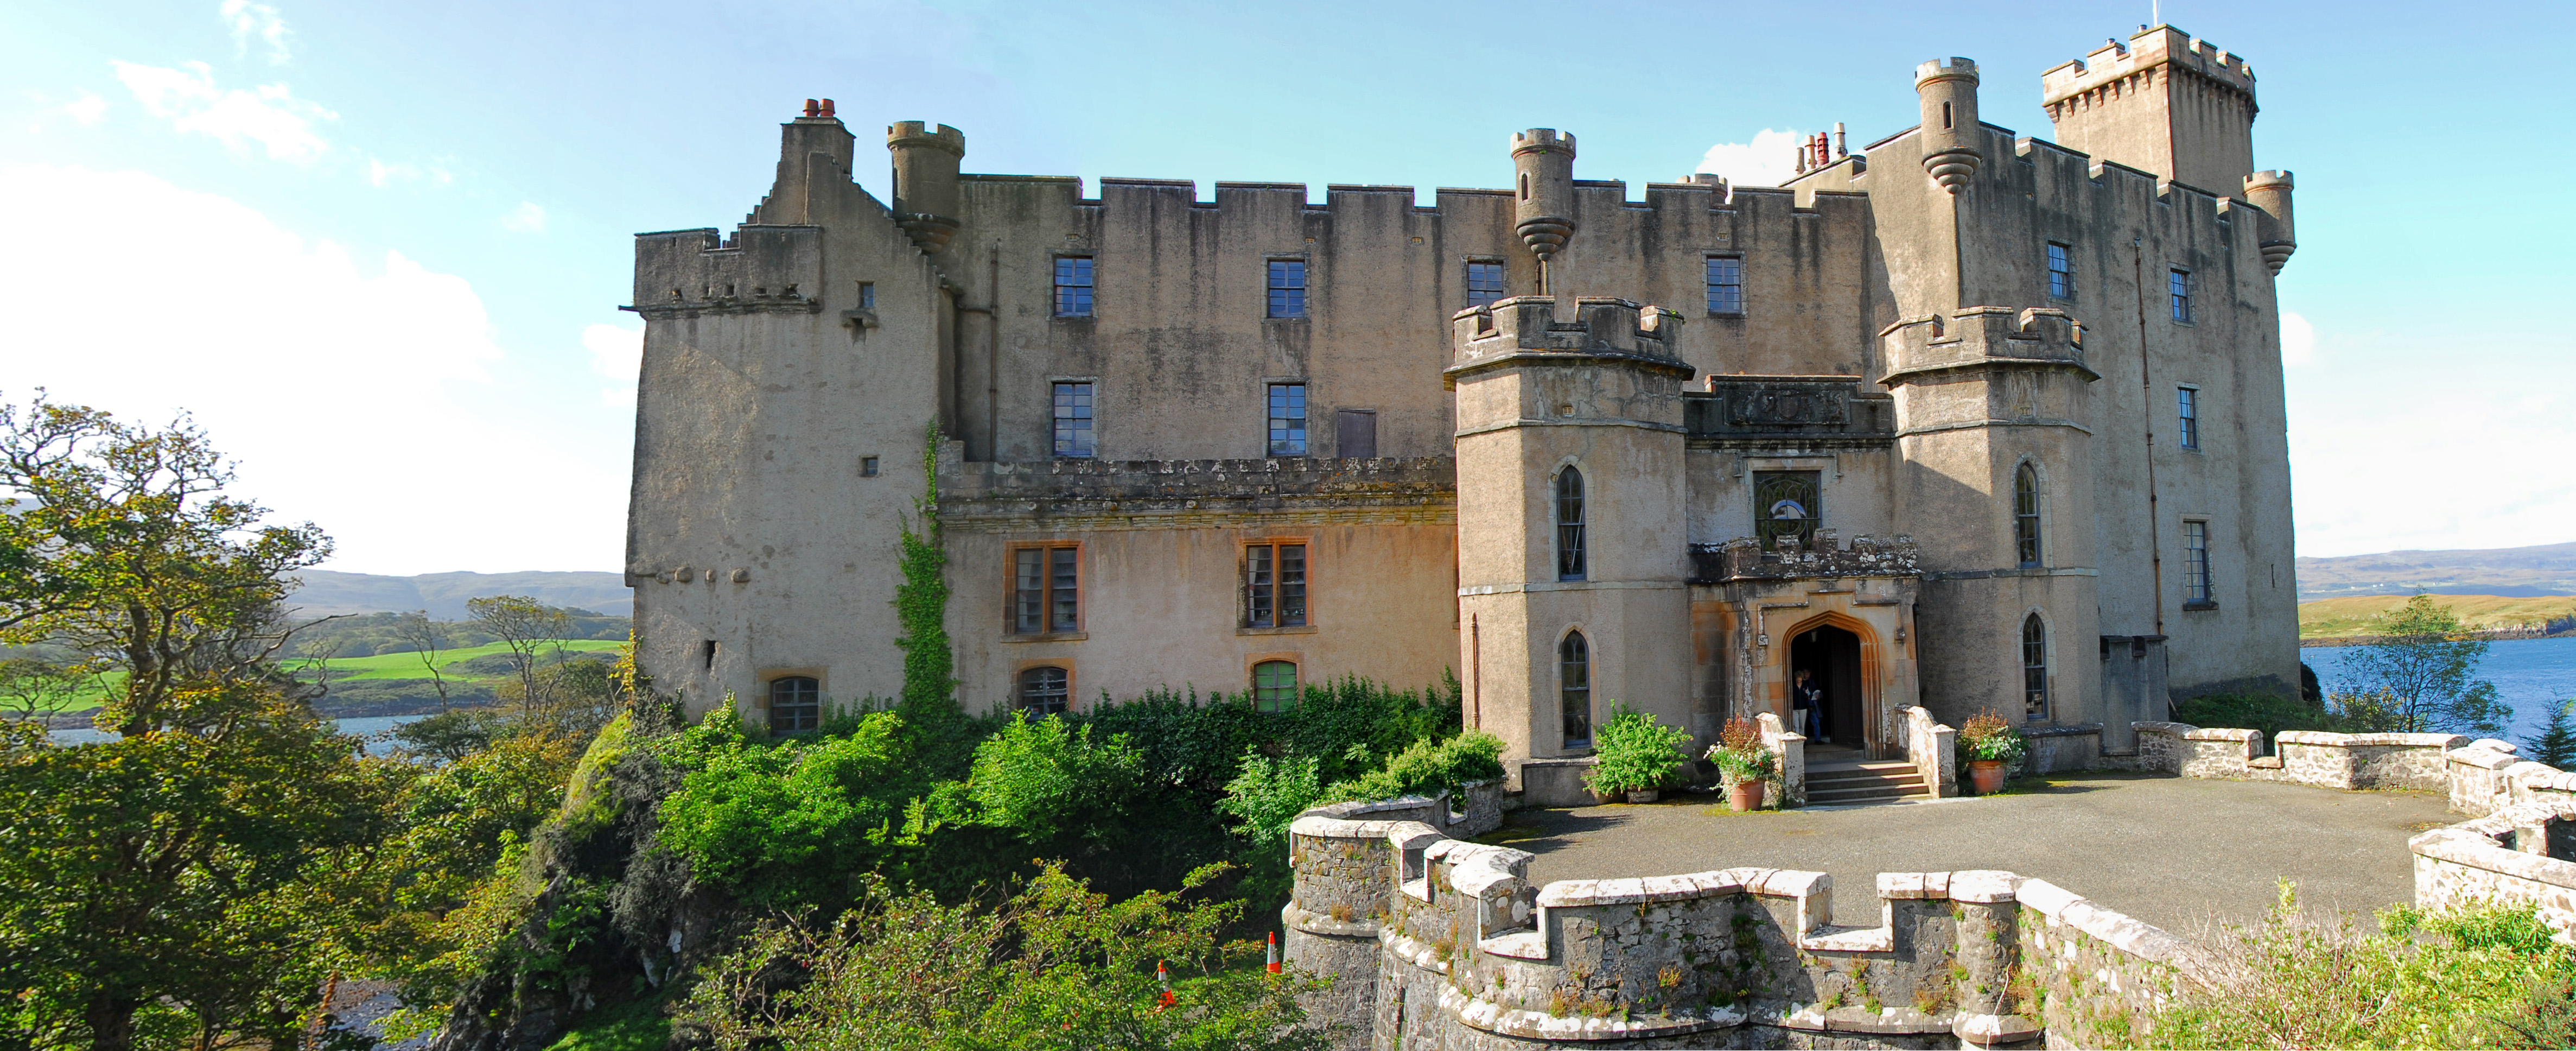 photo of dunvegan castle - photo #31